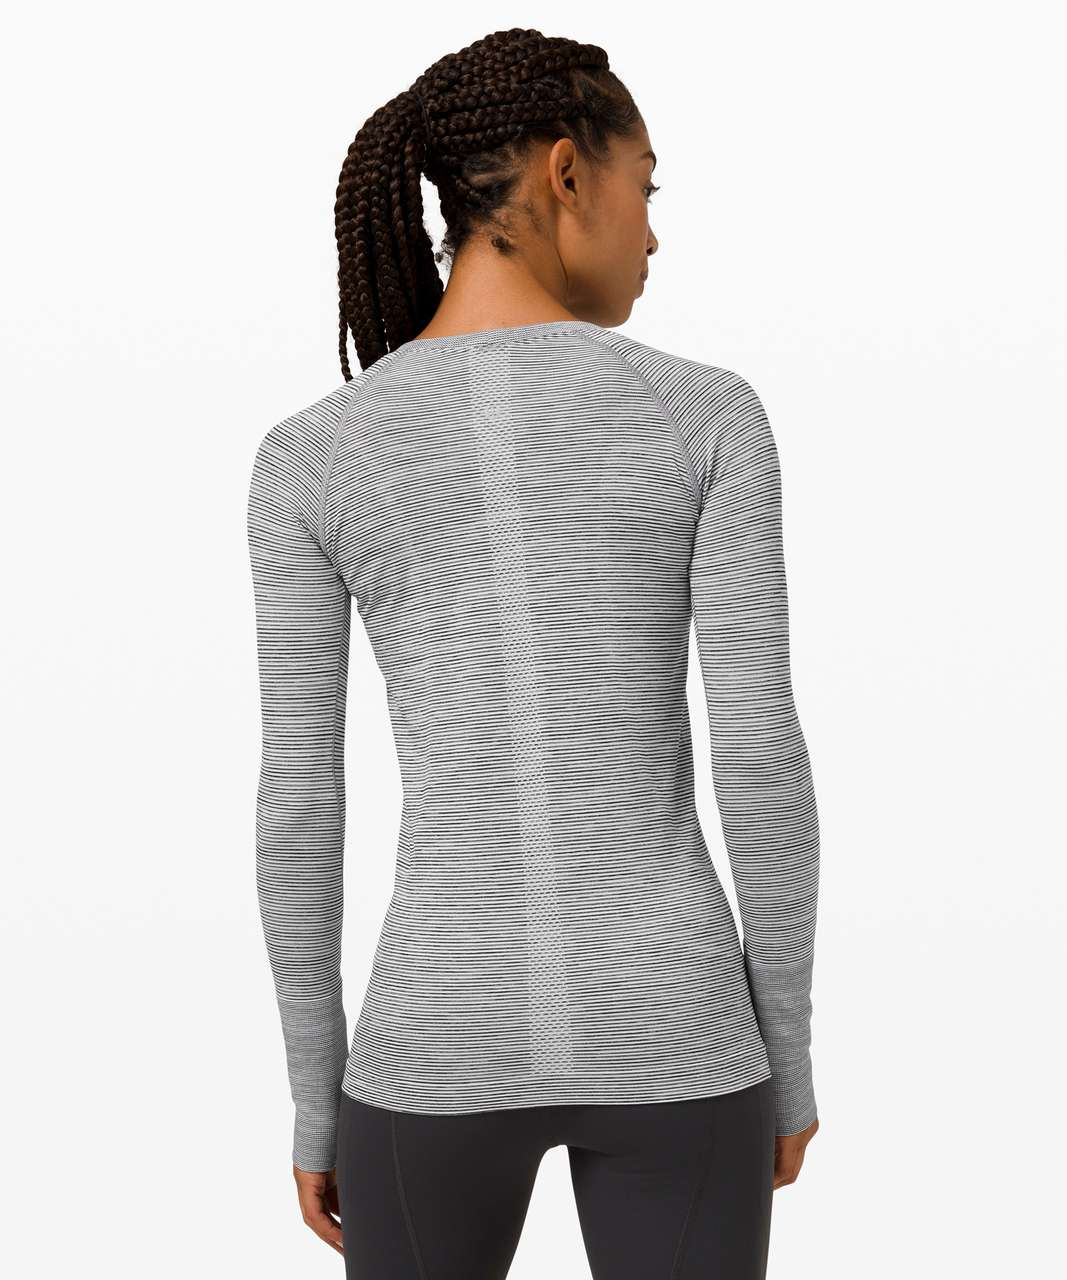 Lululemon Swiftly Tech Long Sleeve 2.0 - Wee Are From Space White